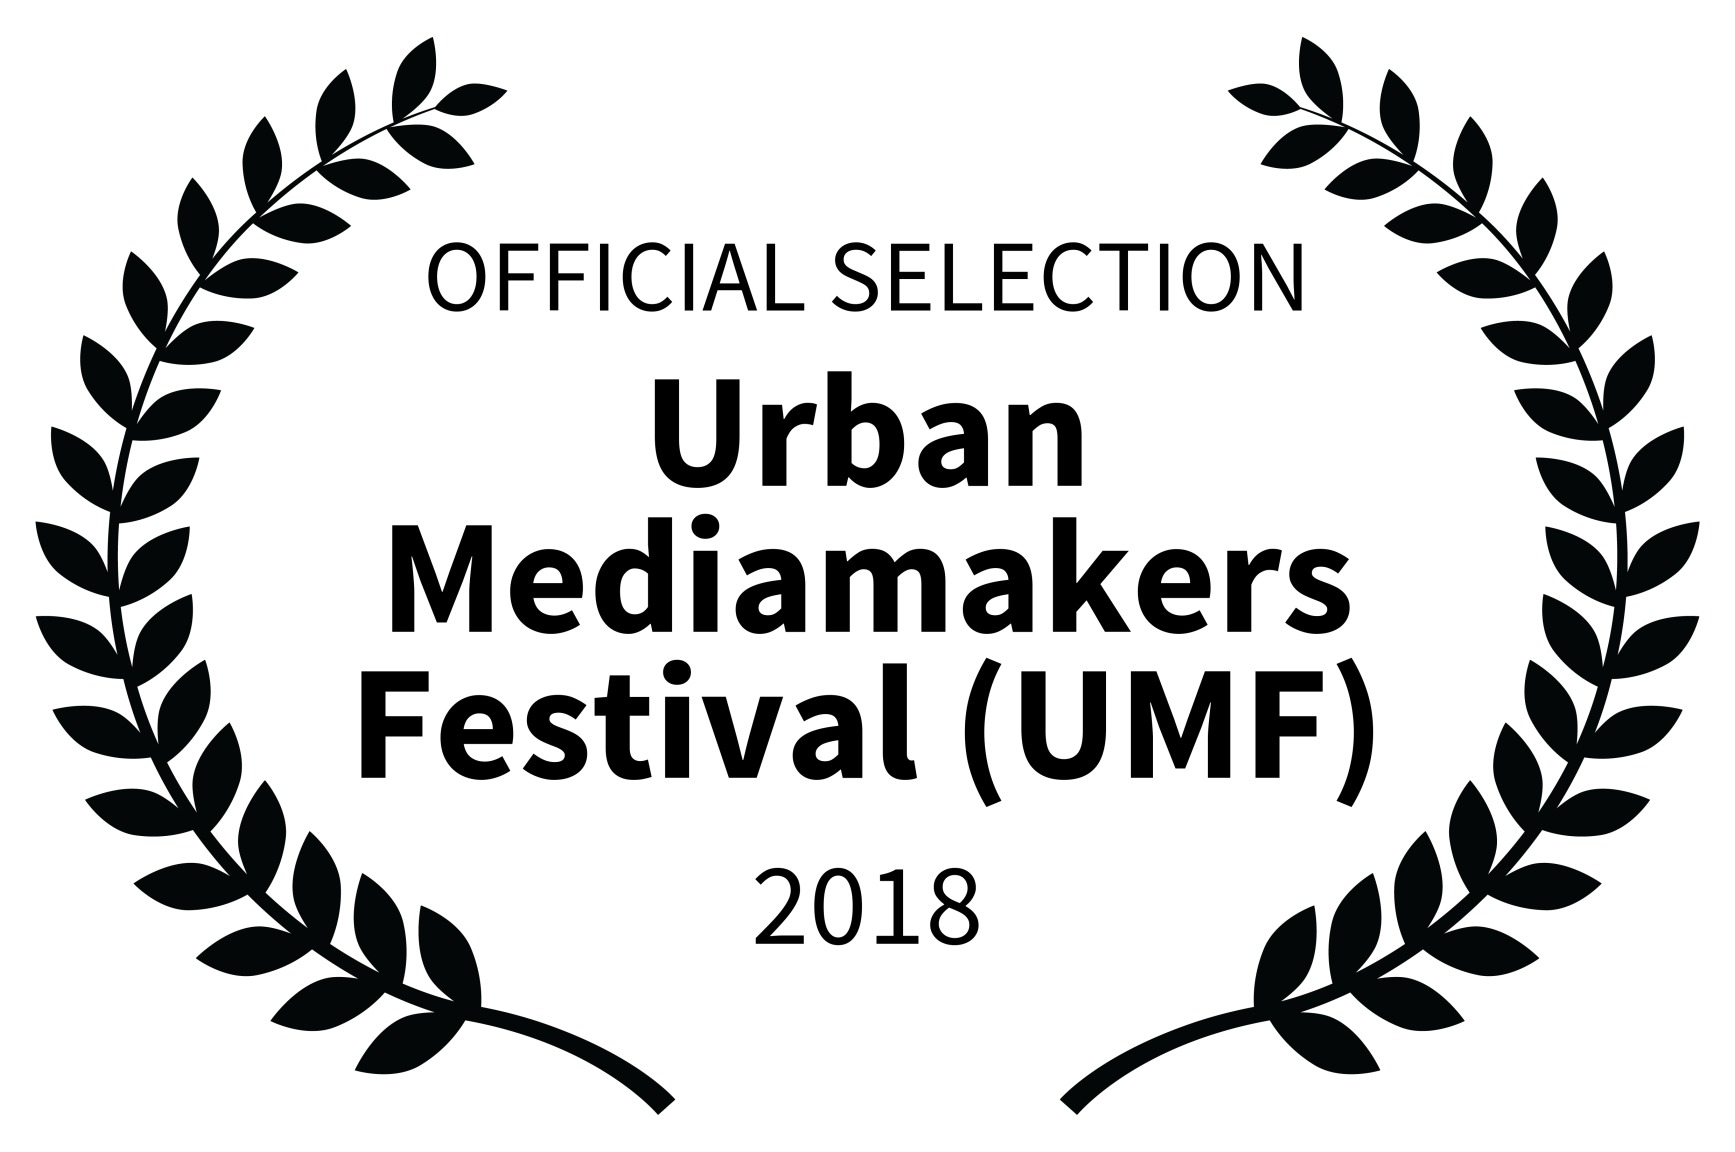 OFFICIAL SELECTION - Urban Mediamakers F